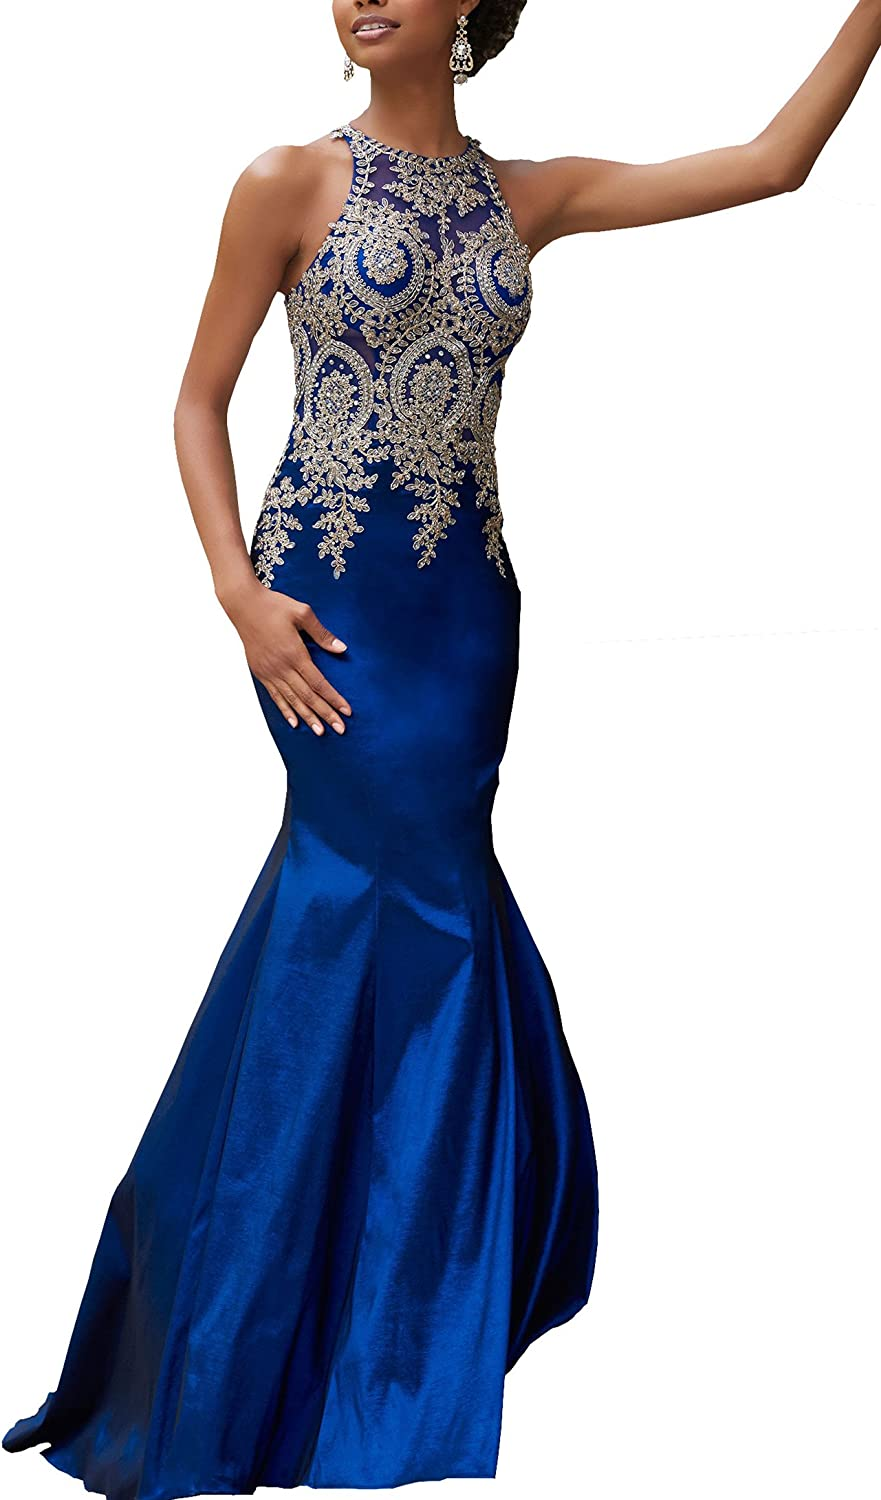 Changjie Women's Mermaid Prom Dress Lace Applique Beading Formal Evening Gown